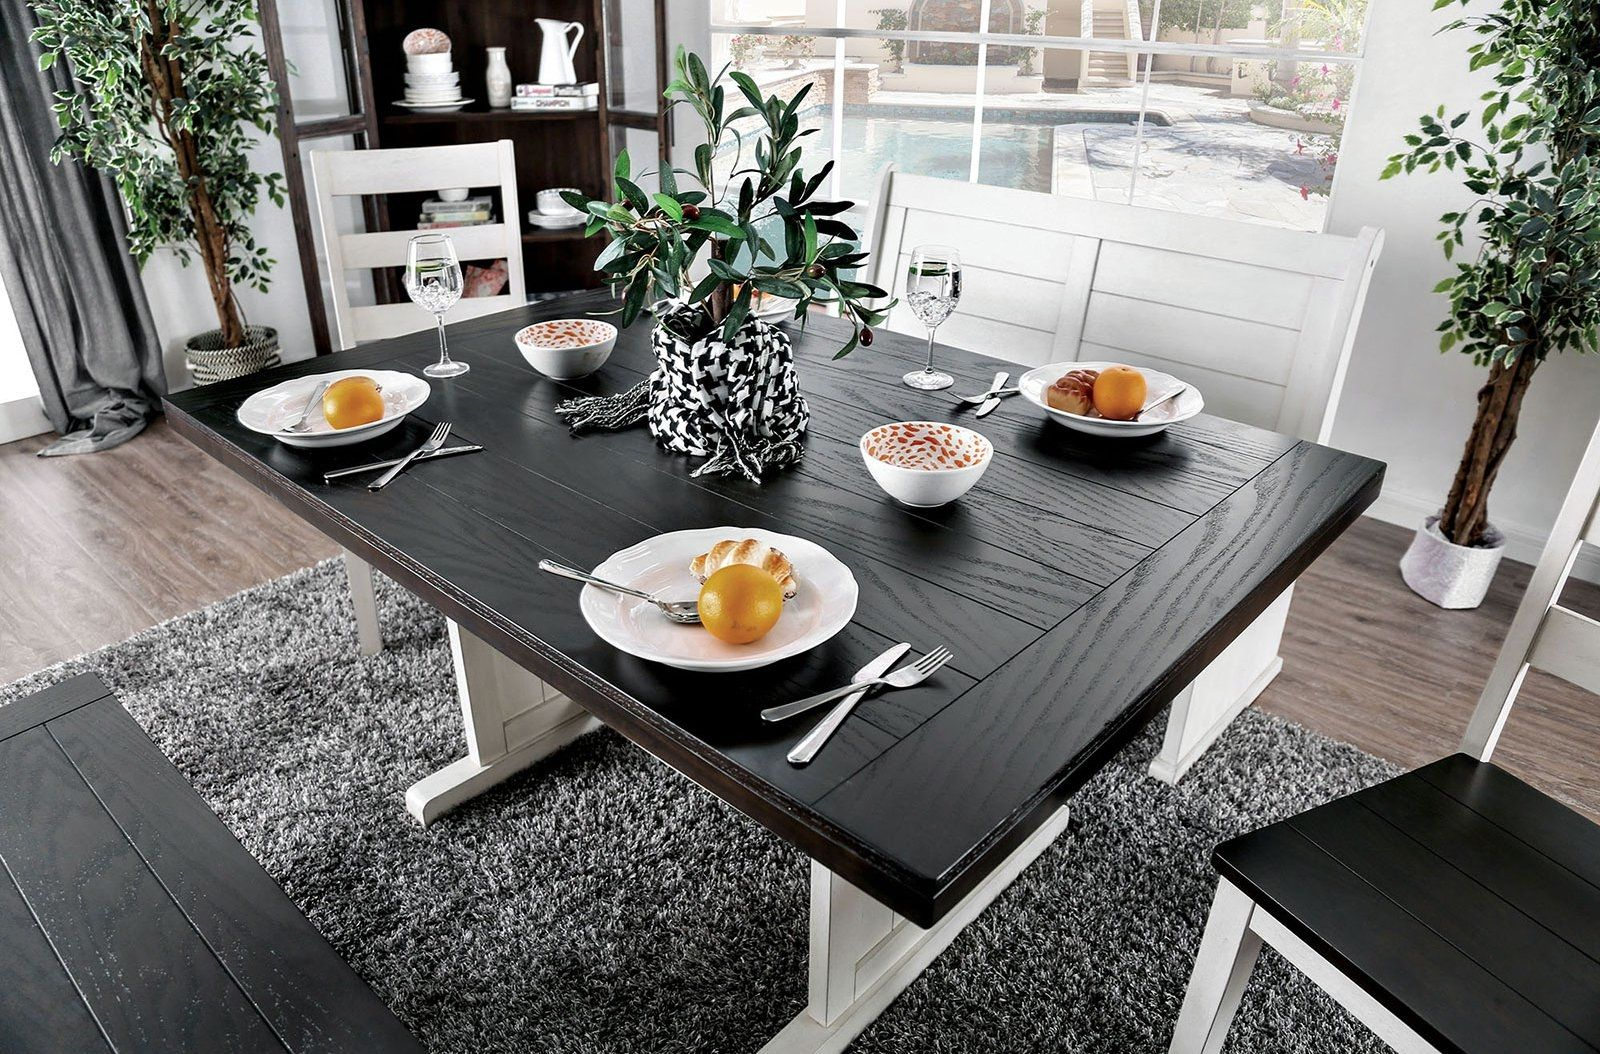 Nekoma Table Dining Table Dining Table In Kitchen Counter